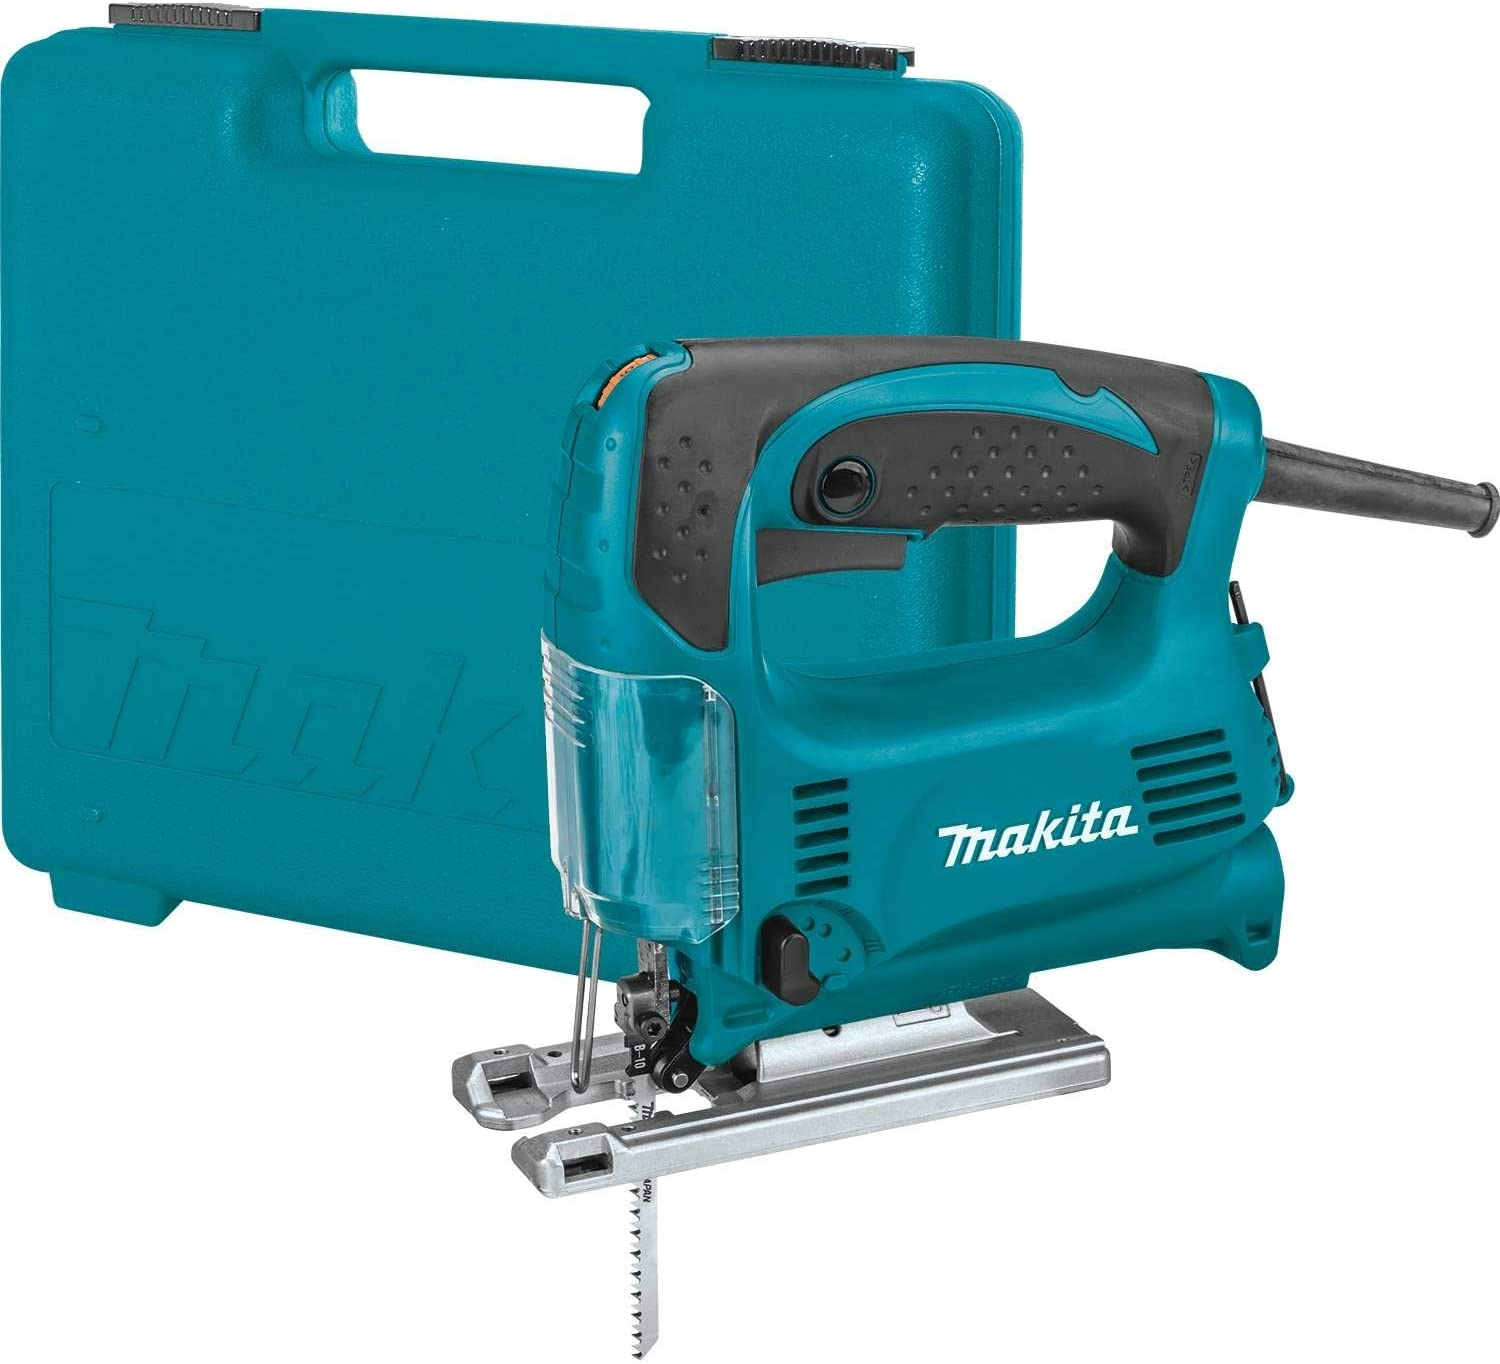 8. Makita 4329K Top-Handle Jigsaw